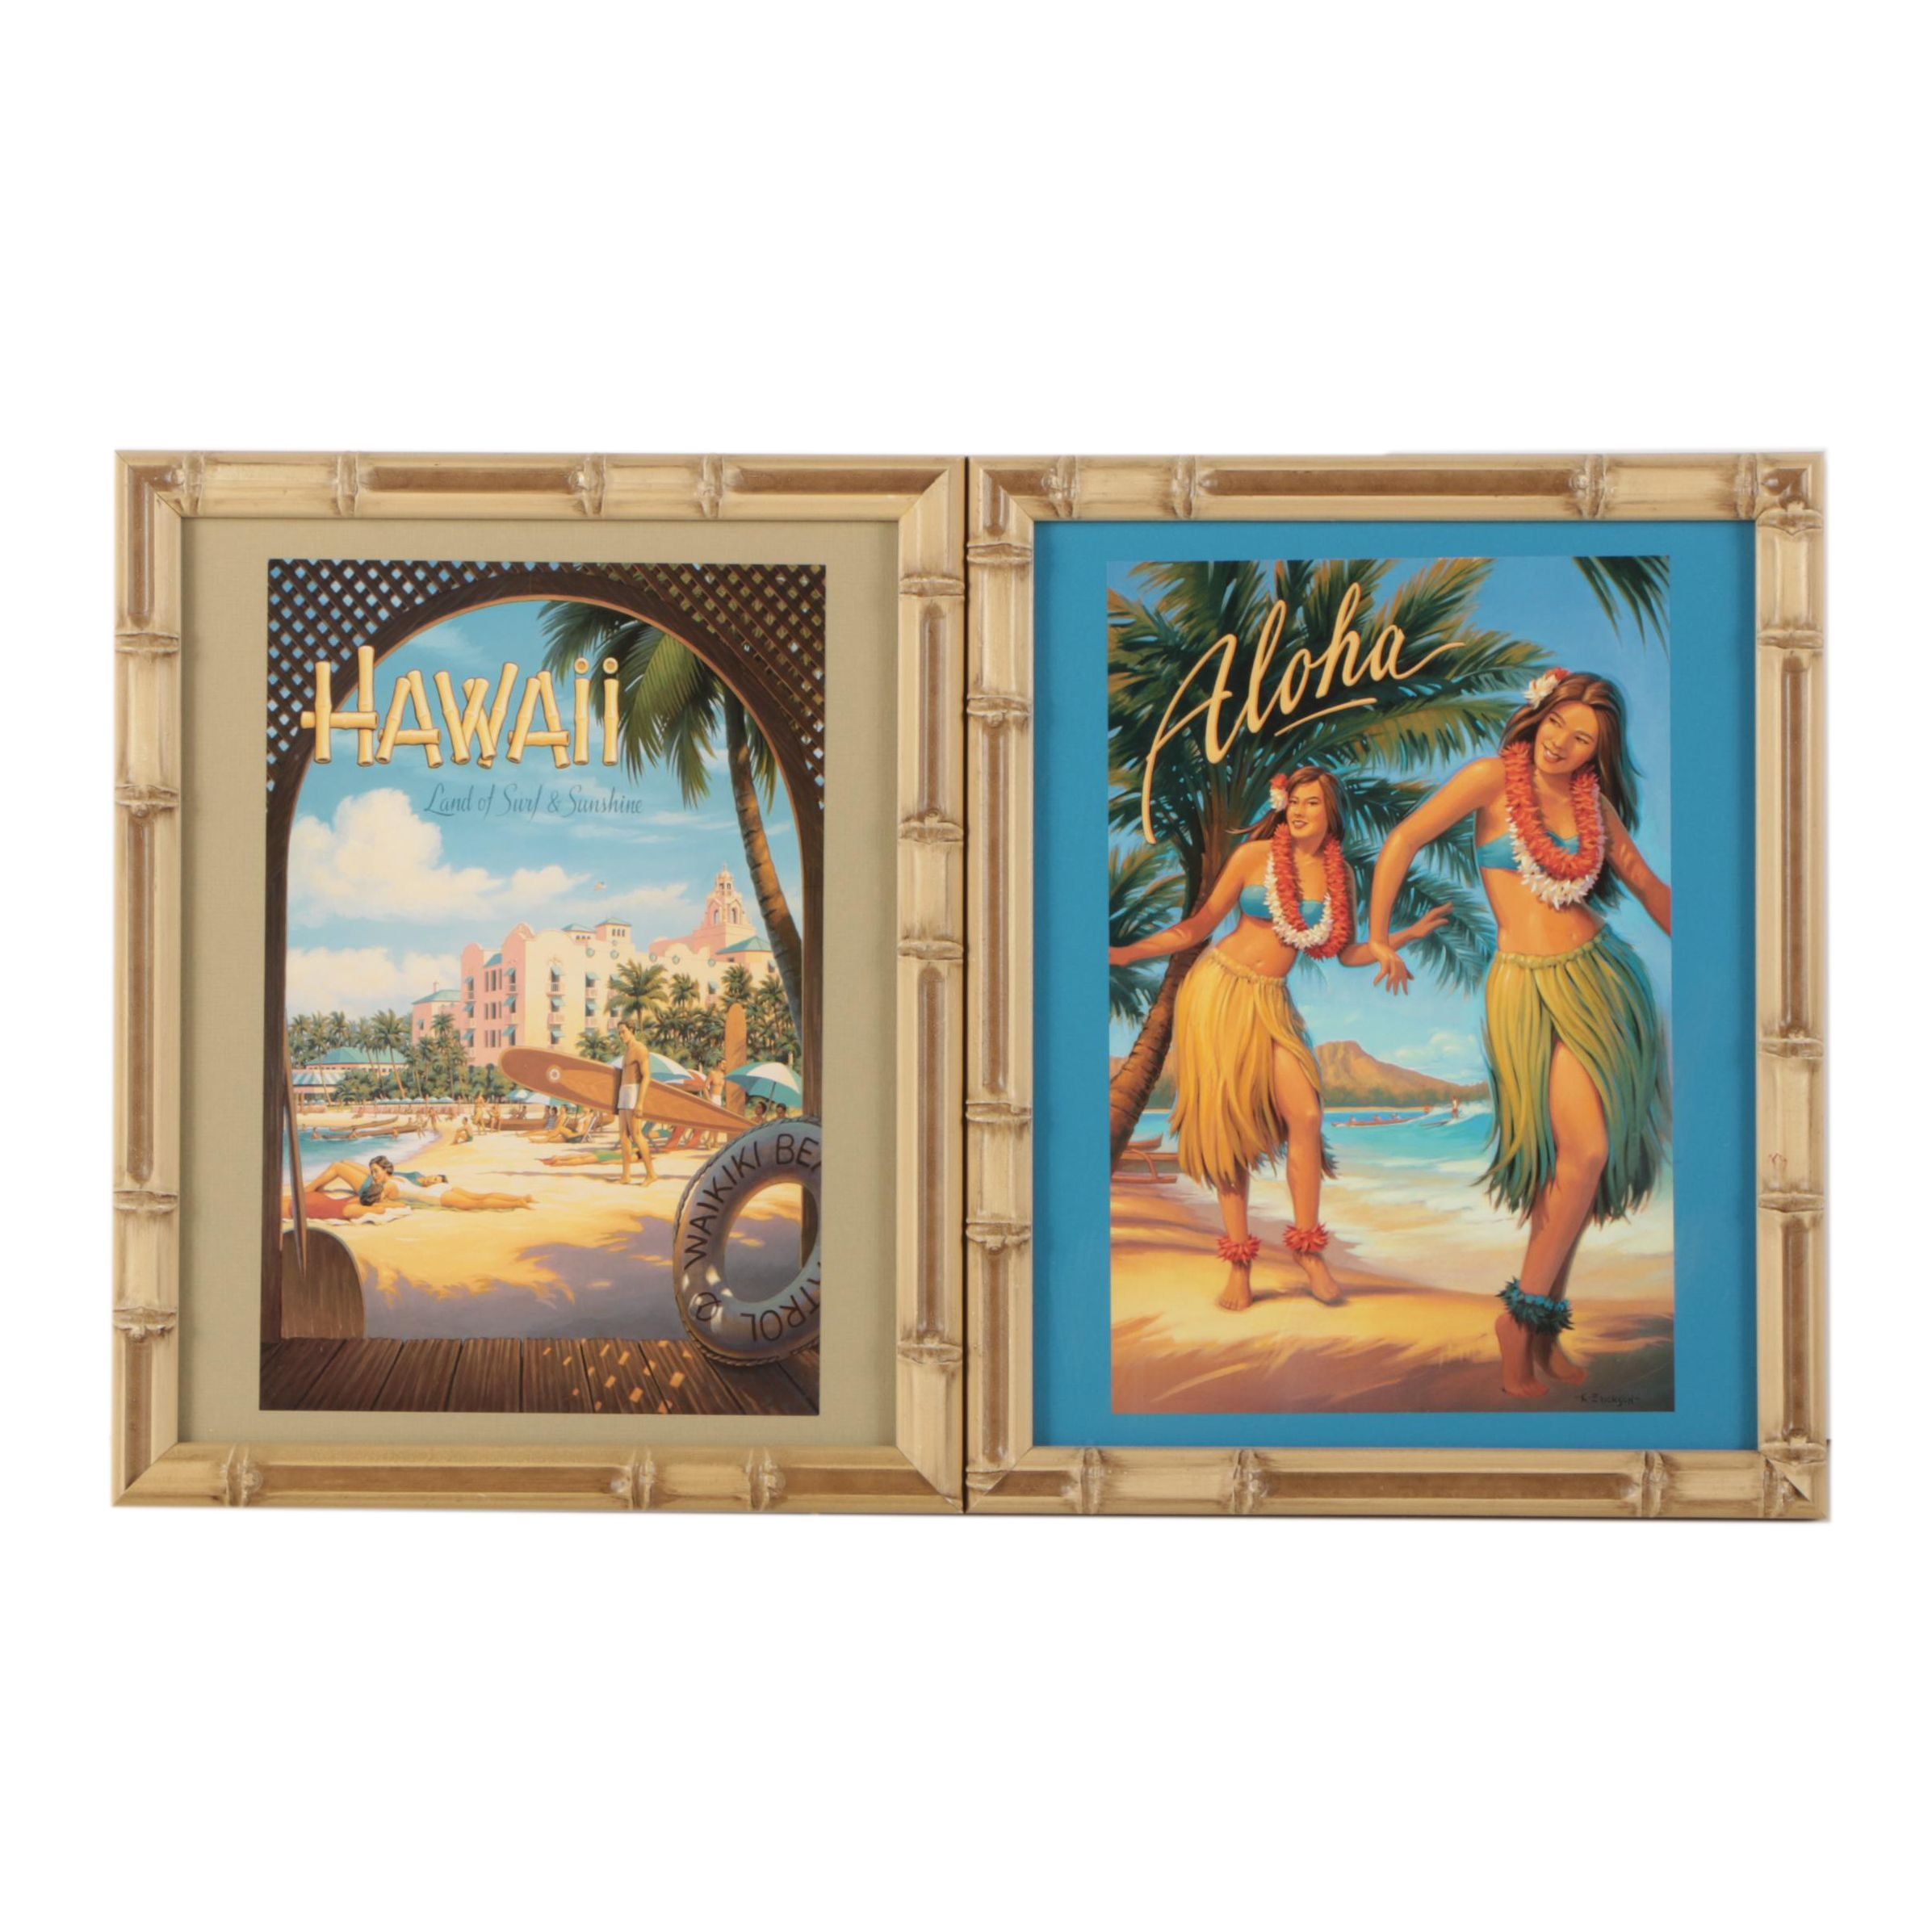 Reproduction Prints After Kerne Erickson of Hawaii Travel Advertisements